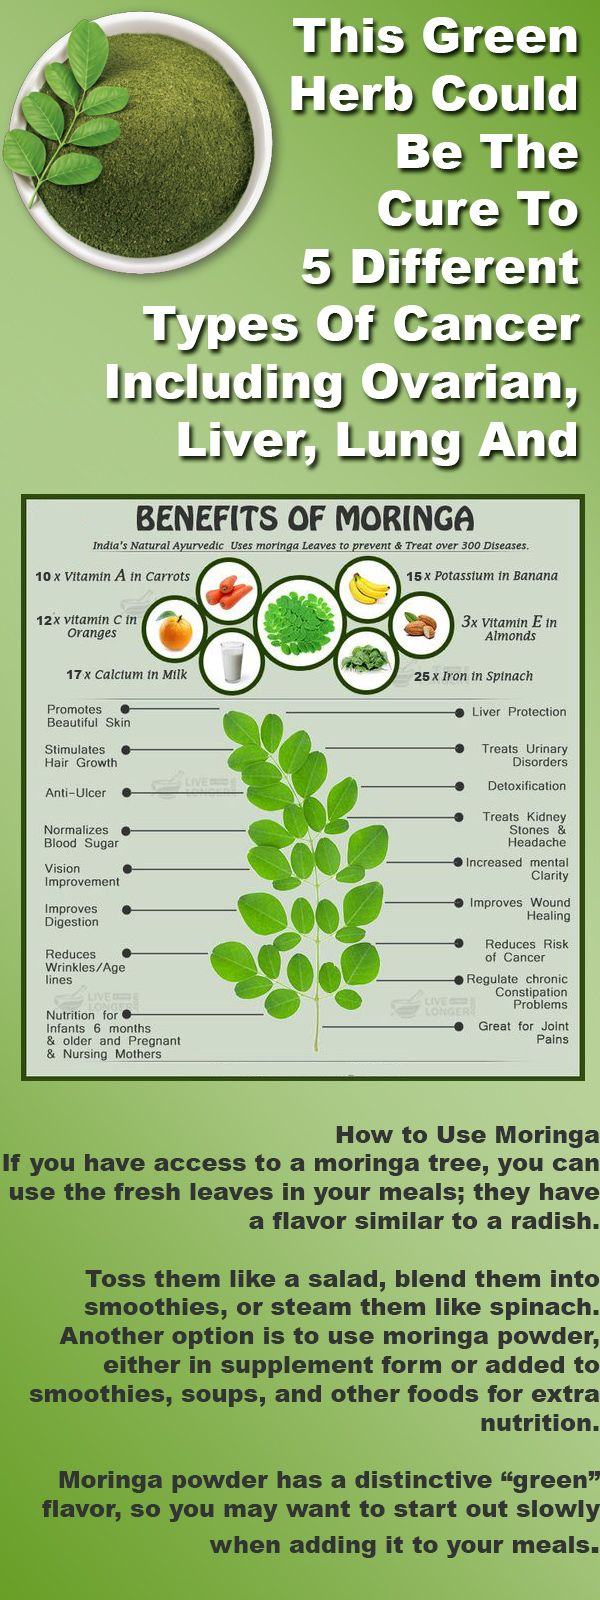 Moringa oleifera is a fast-growing tree native to South Asia and now found throughout the tropics. Its leaves have been